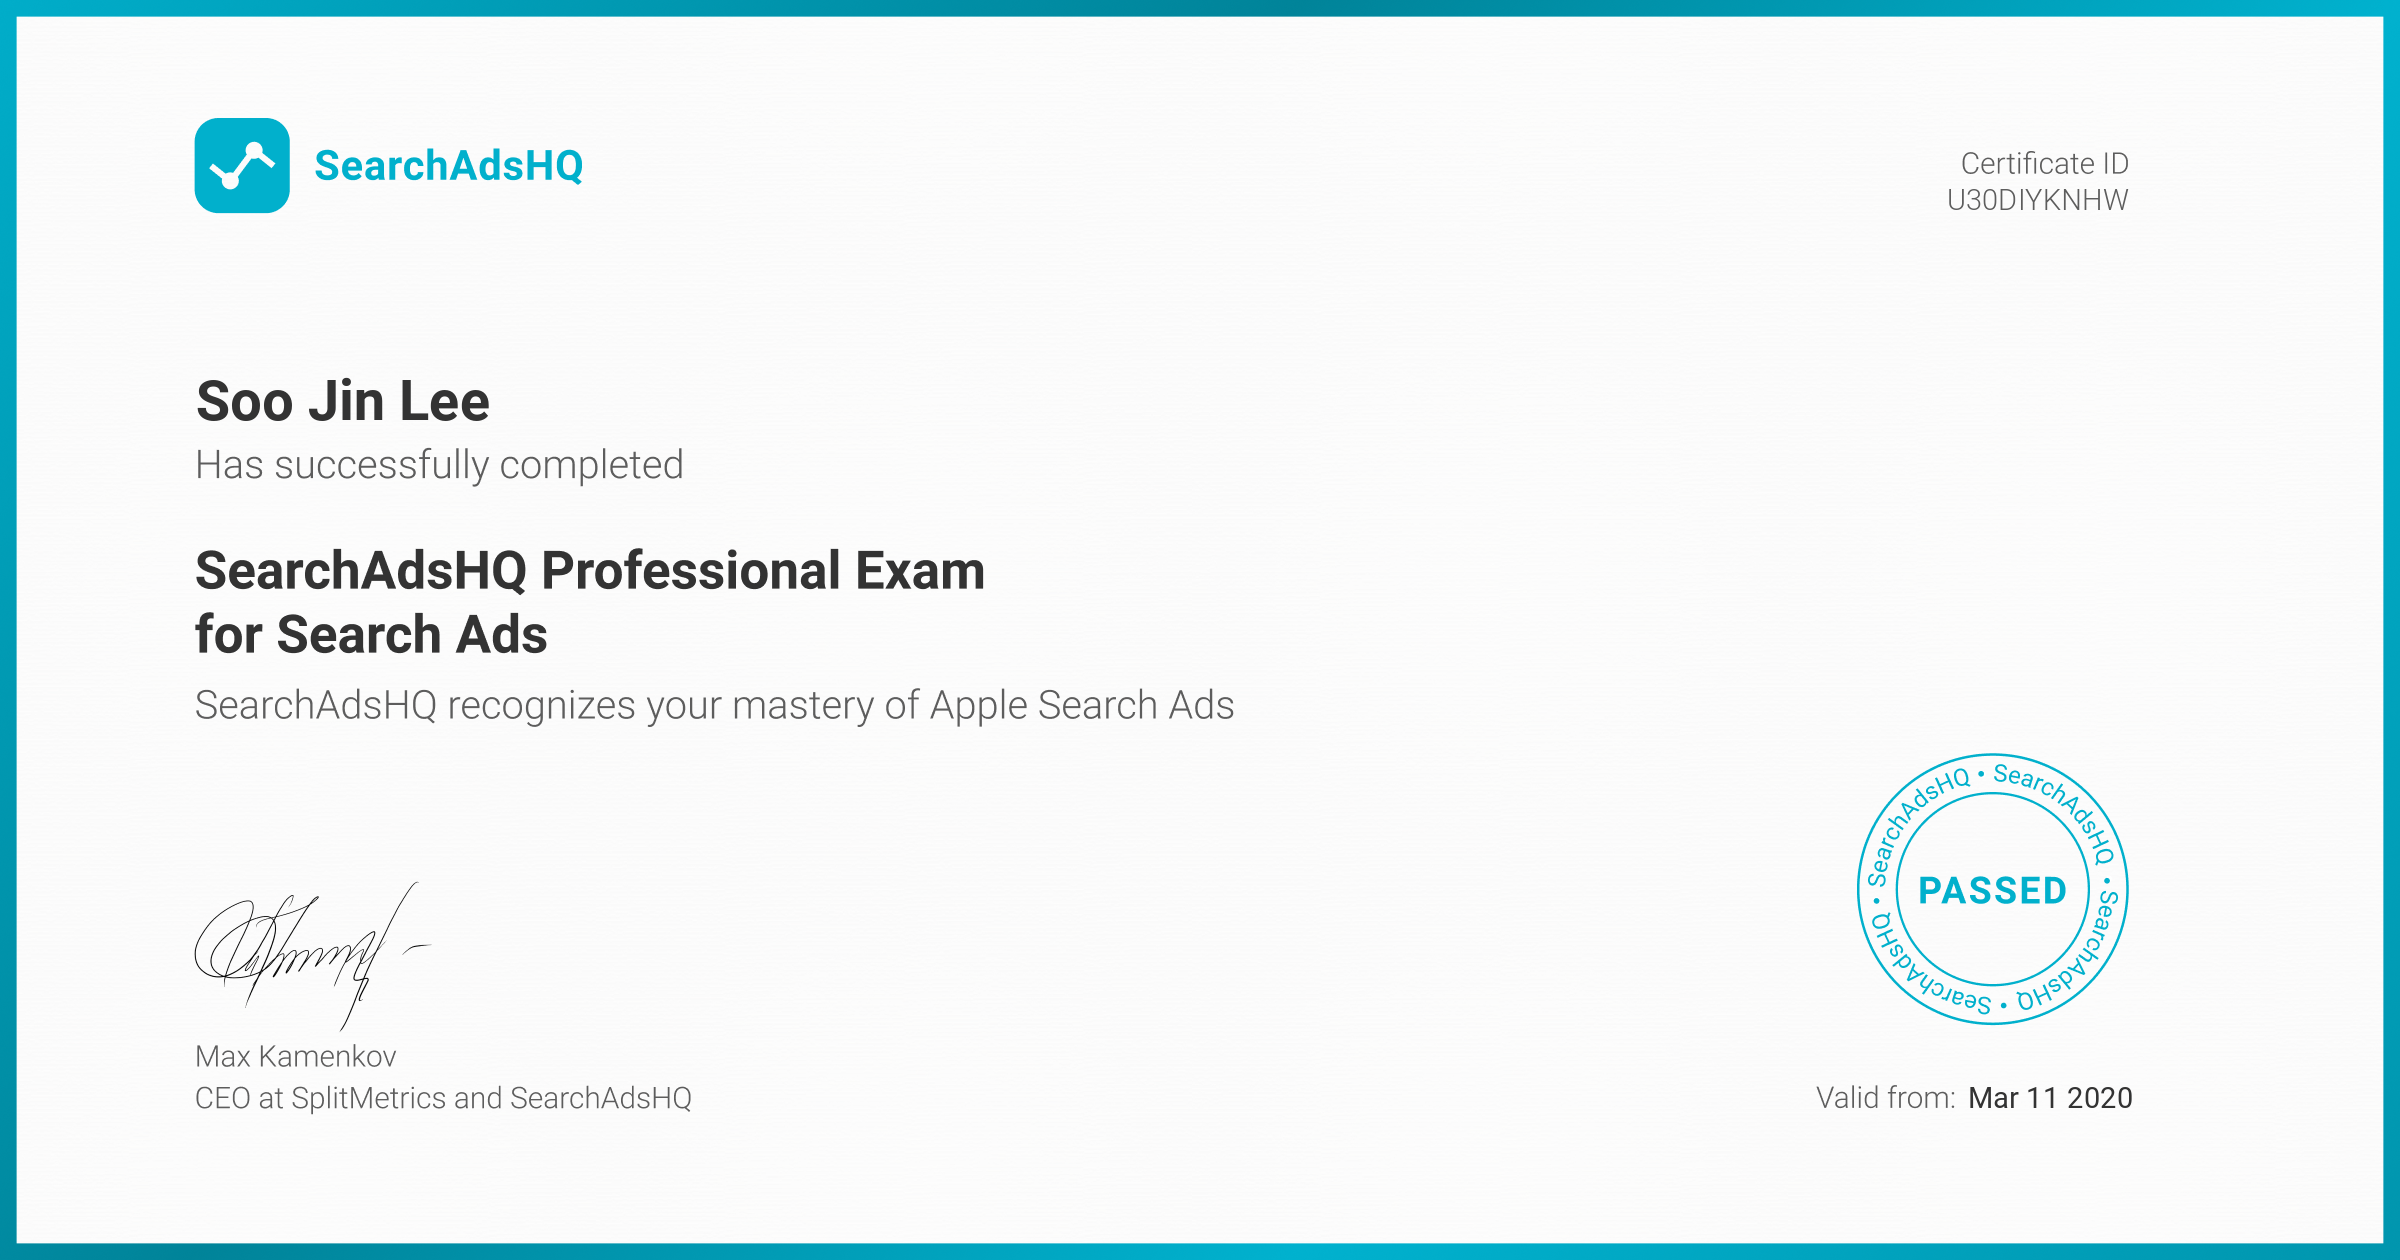 Certificate for Soo Jin Lee | SearchAdsHQ Professional Exam for Search Ads